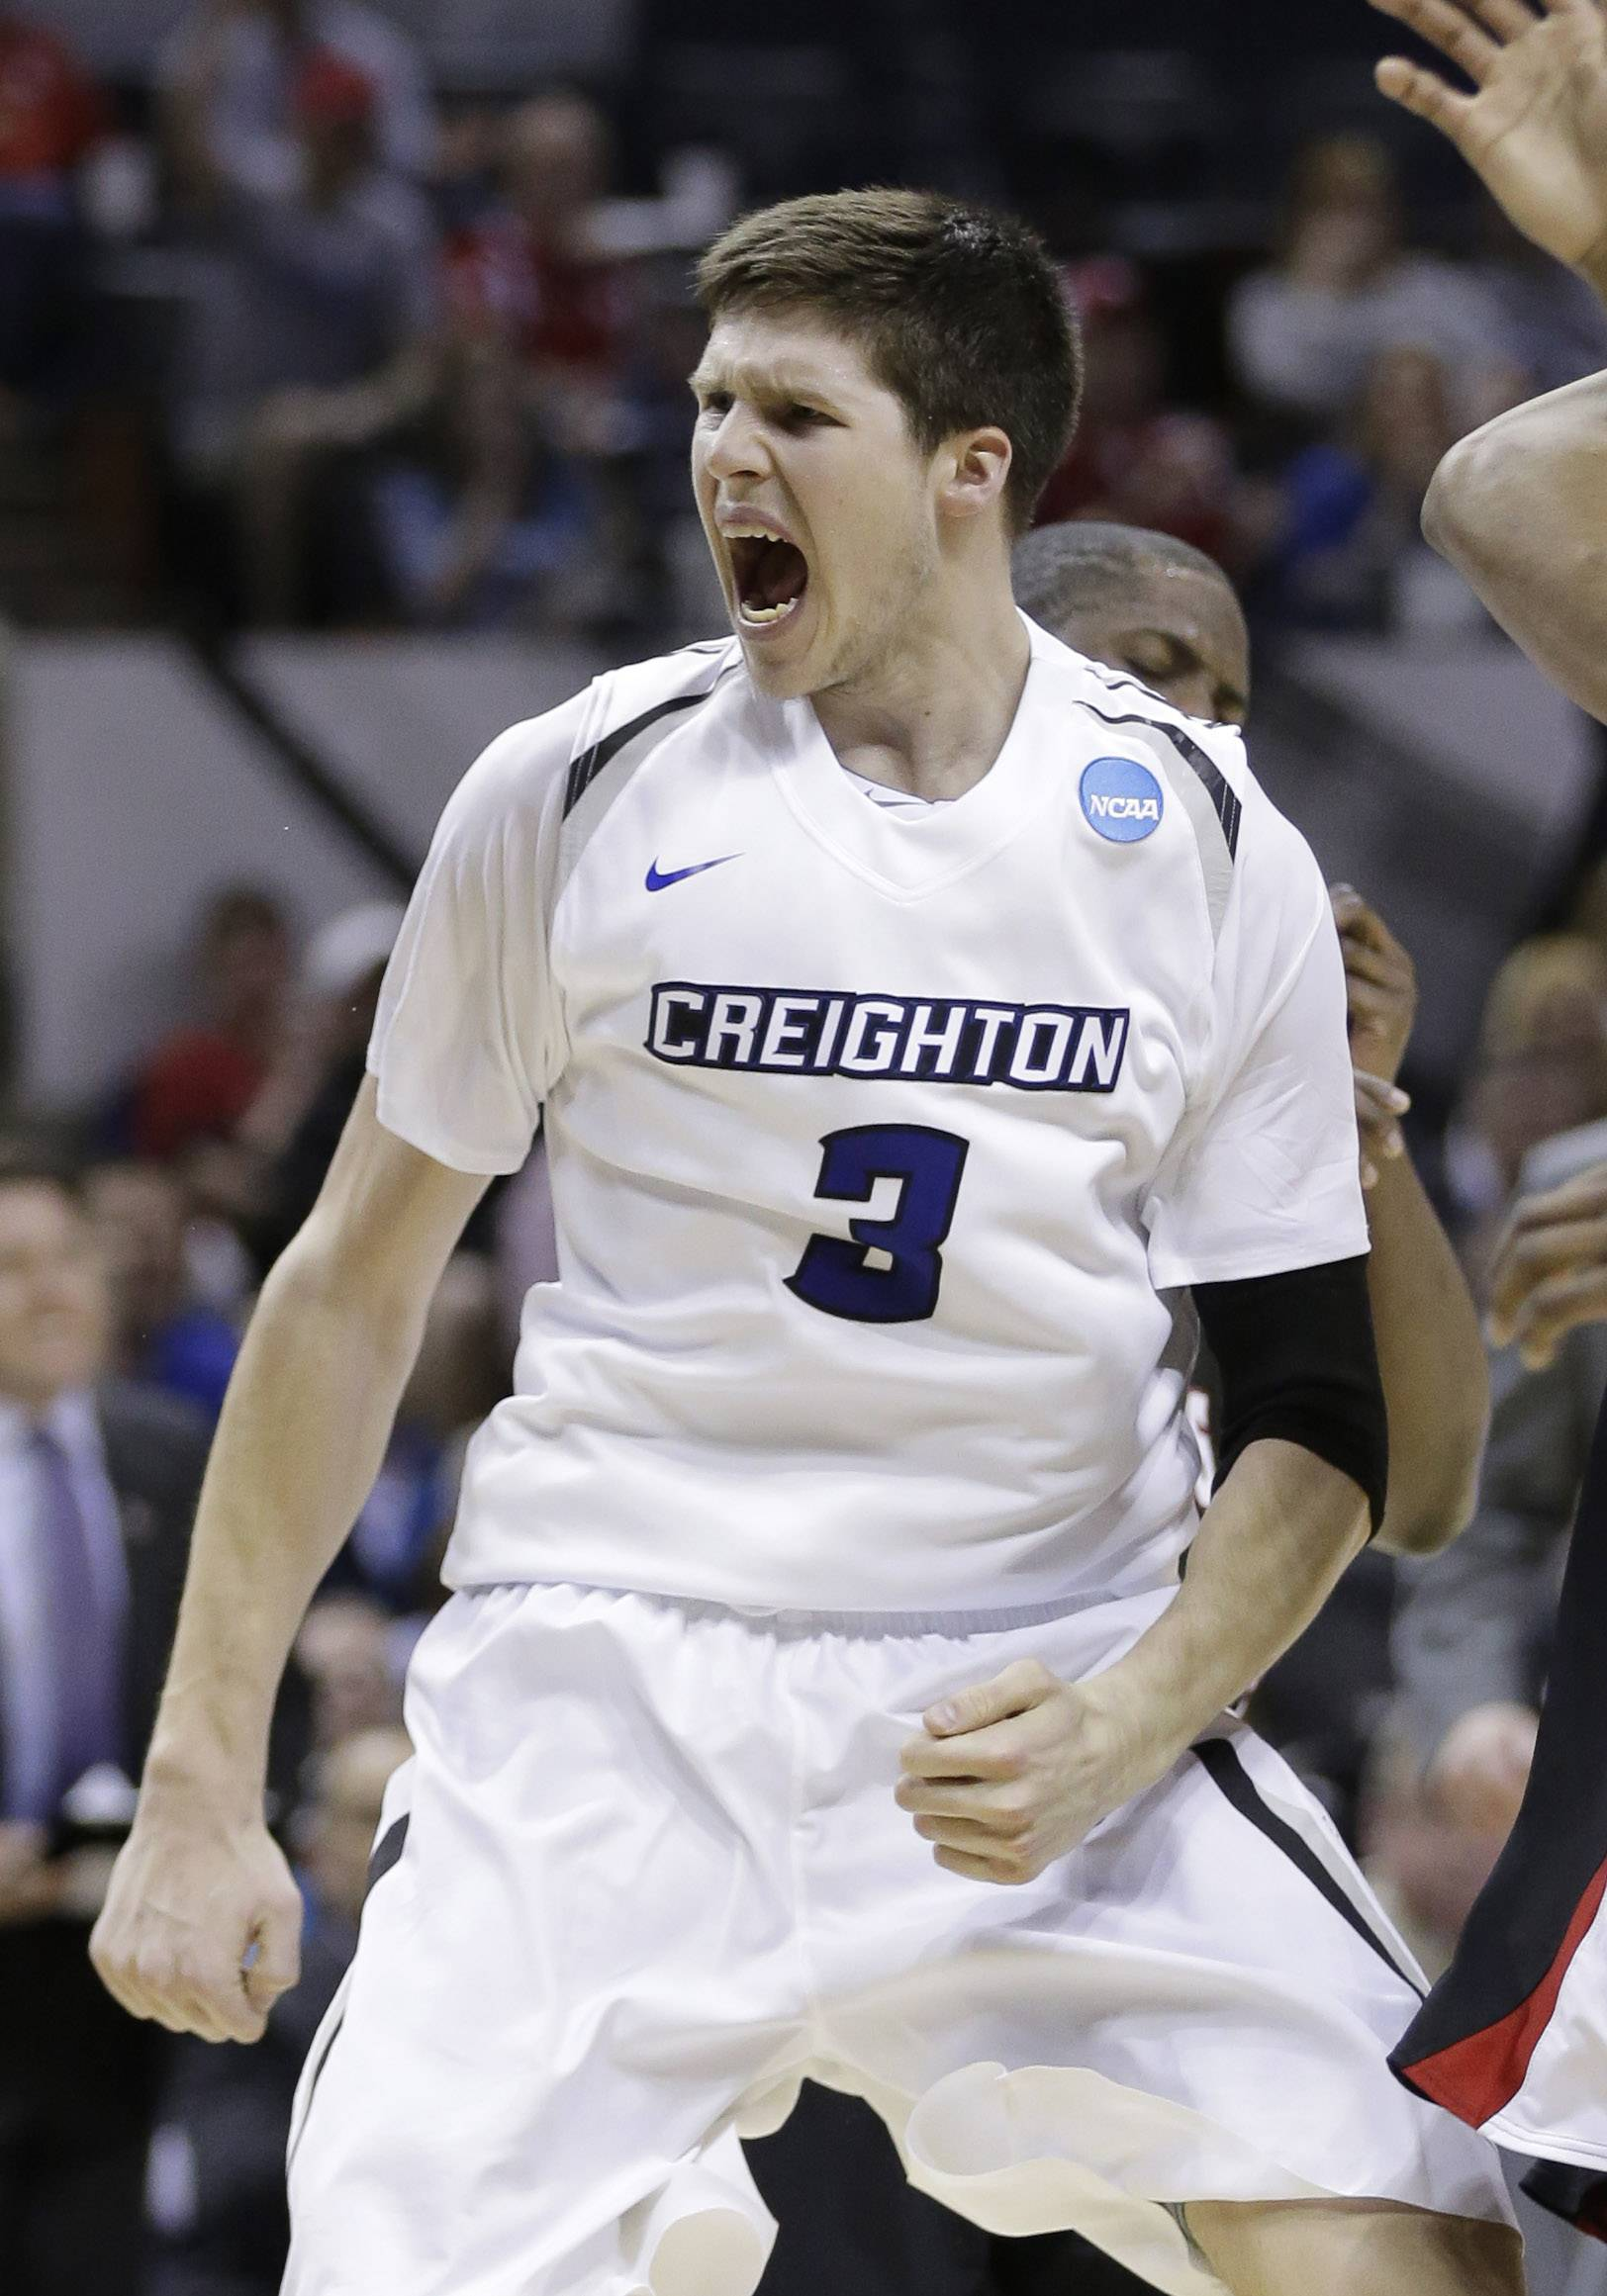 Creighton's Doug McDermott (3) celebrates a score against Louisiana-Lafayette during the second half of a second-round game in the NCAA college basketball tournament Friday, March 21, 2014, in San Antonio. Creighton won 76-66.